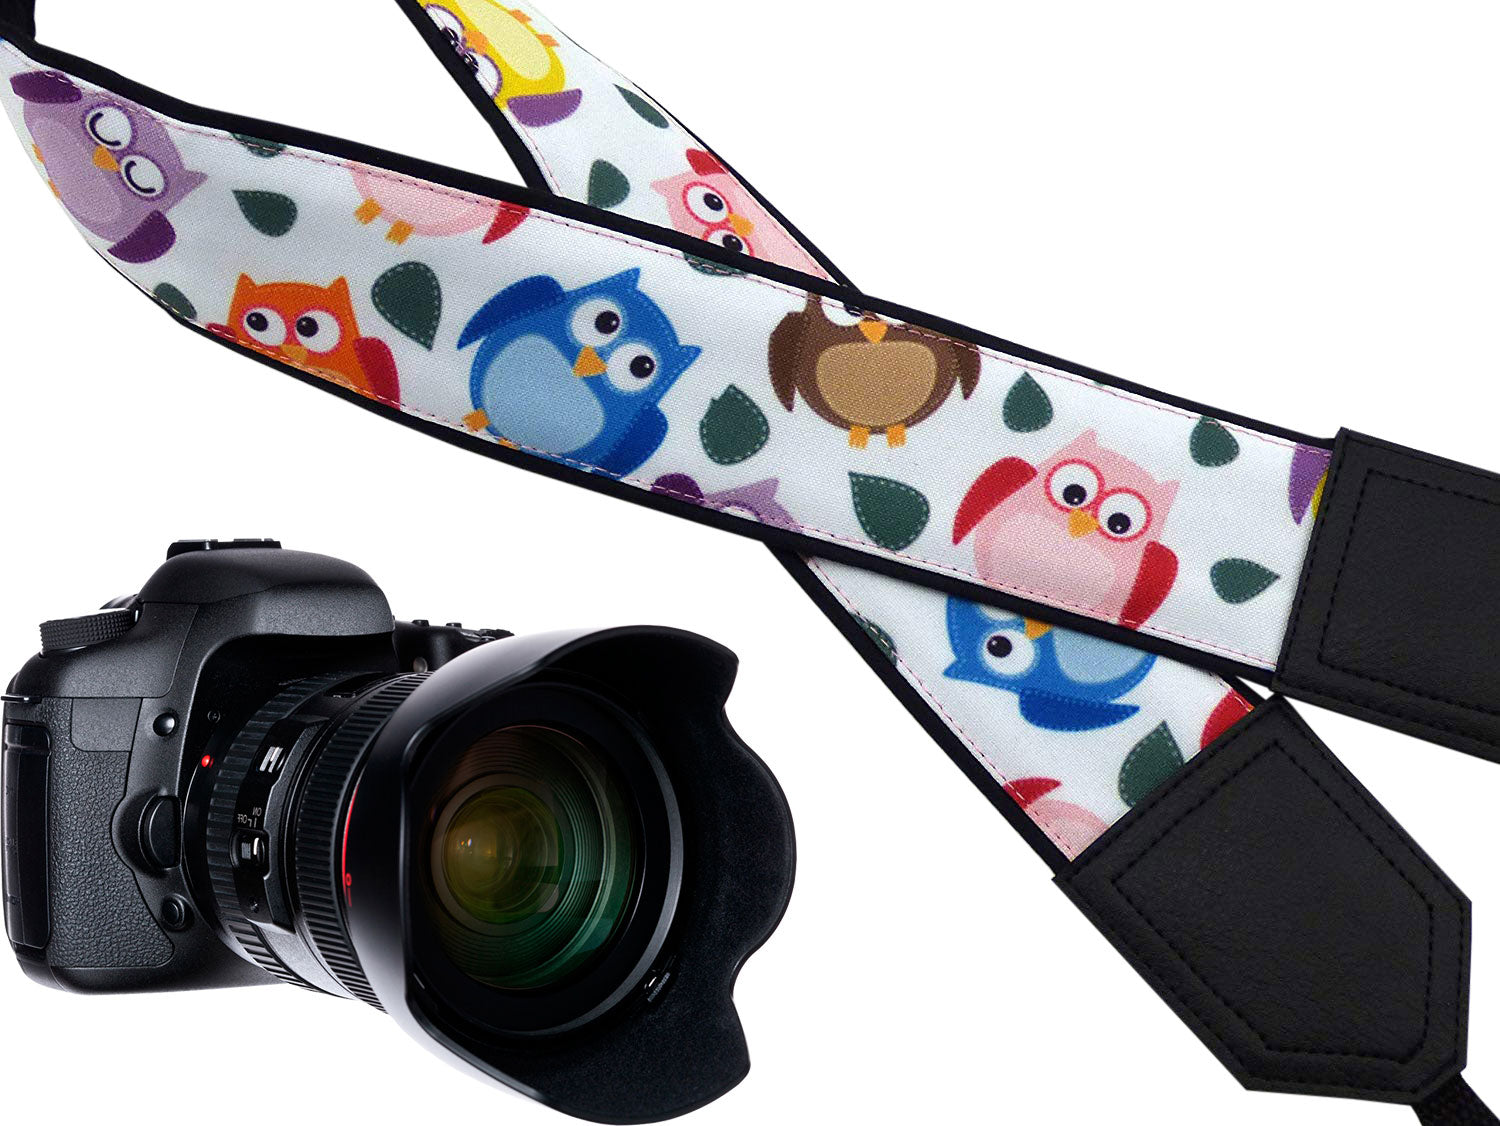 InTePro camera strap with owls design for mirrorless cameras. Birds camera strap. Black DSLR / SLR Camera Strap with personalization.